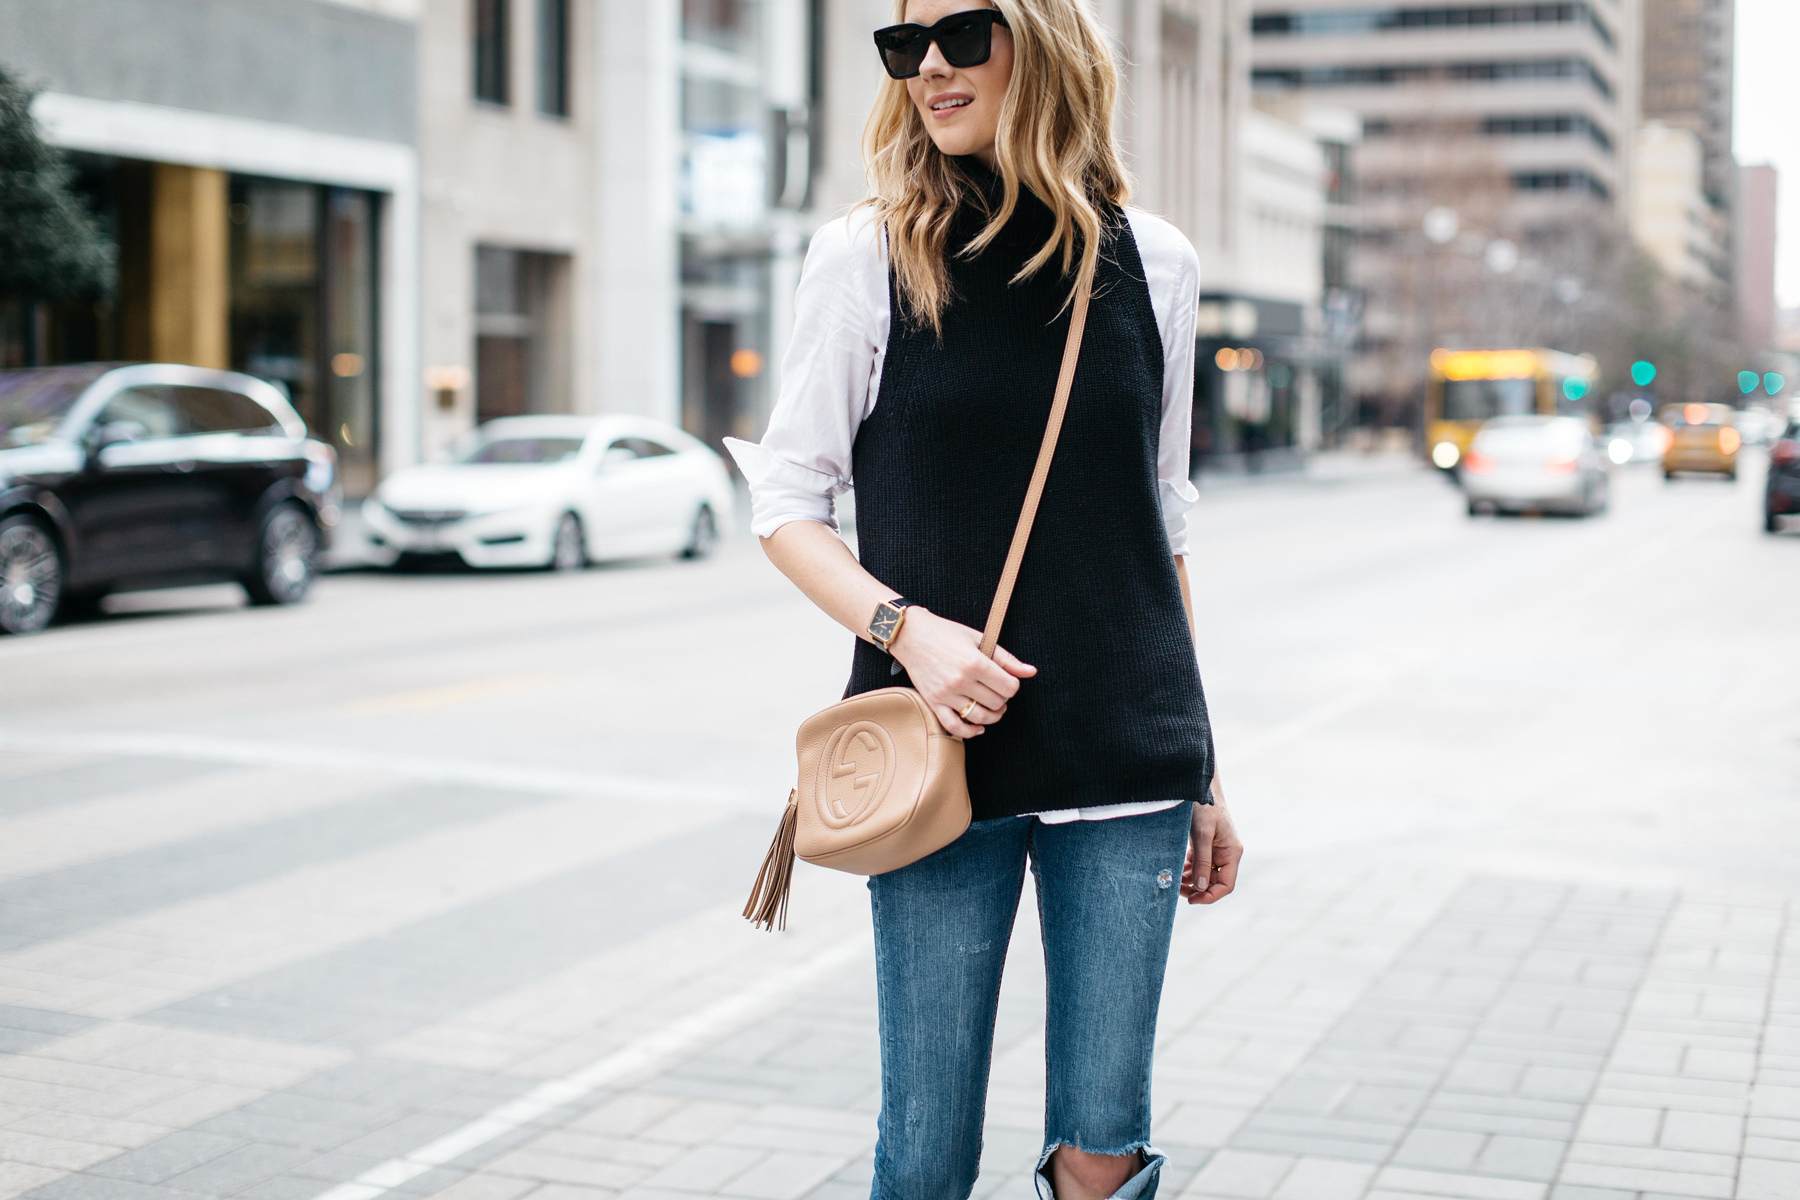 Fall Outfit, Winter Outfit, White Button Down Shirt, Black Sleeveless Turtleneck Sweater, Denim Ripped Skinny Jeans, Gucci Soho Handbag